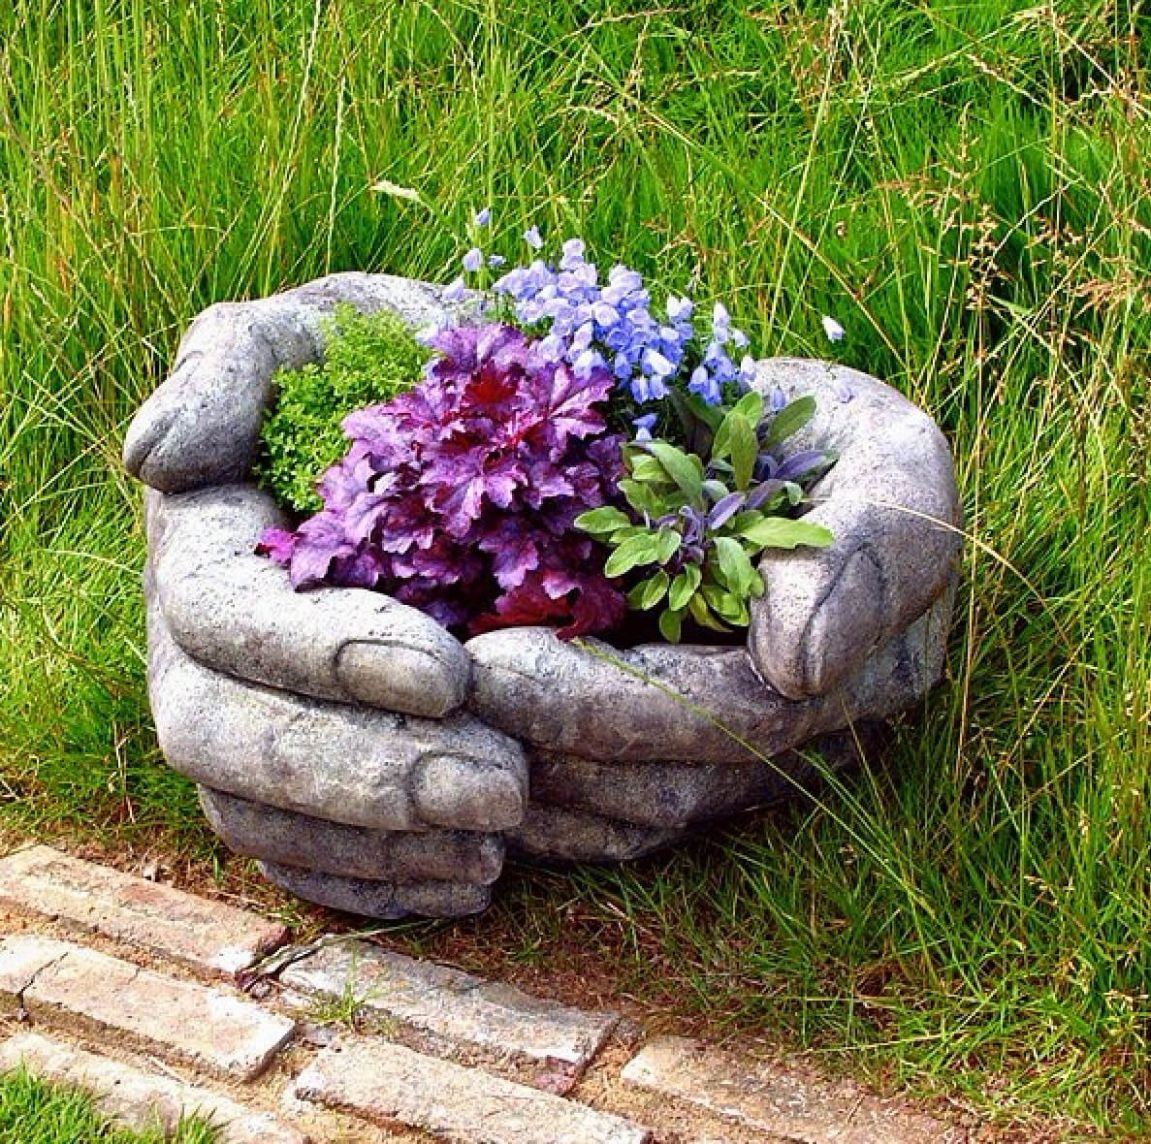 10 Best Creative Garden Container Ideas and Designs for 10 - garden quirky ideas